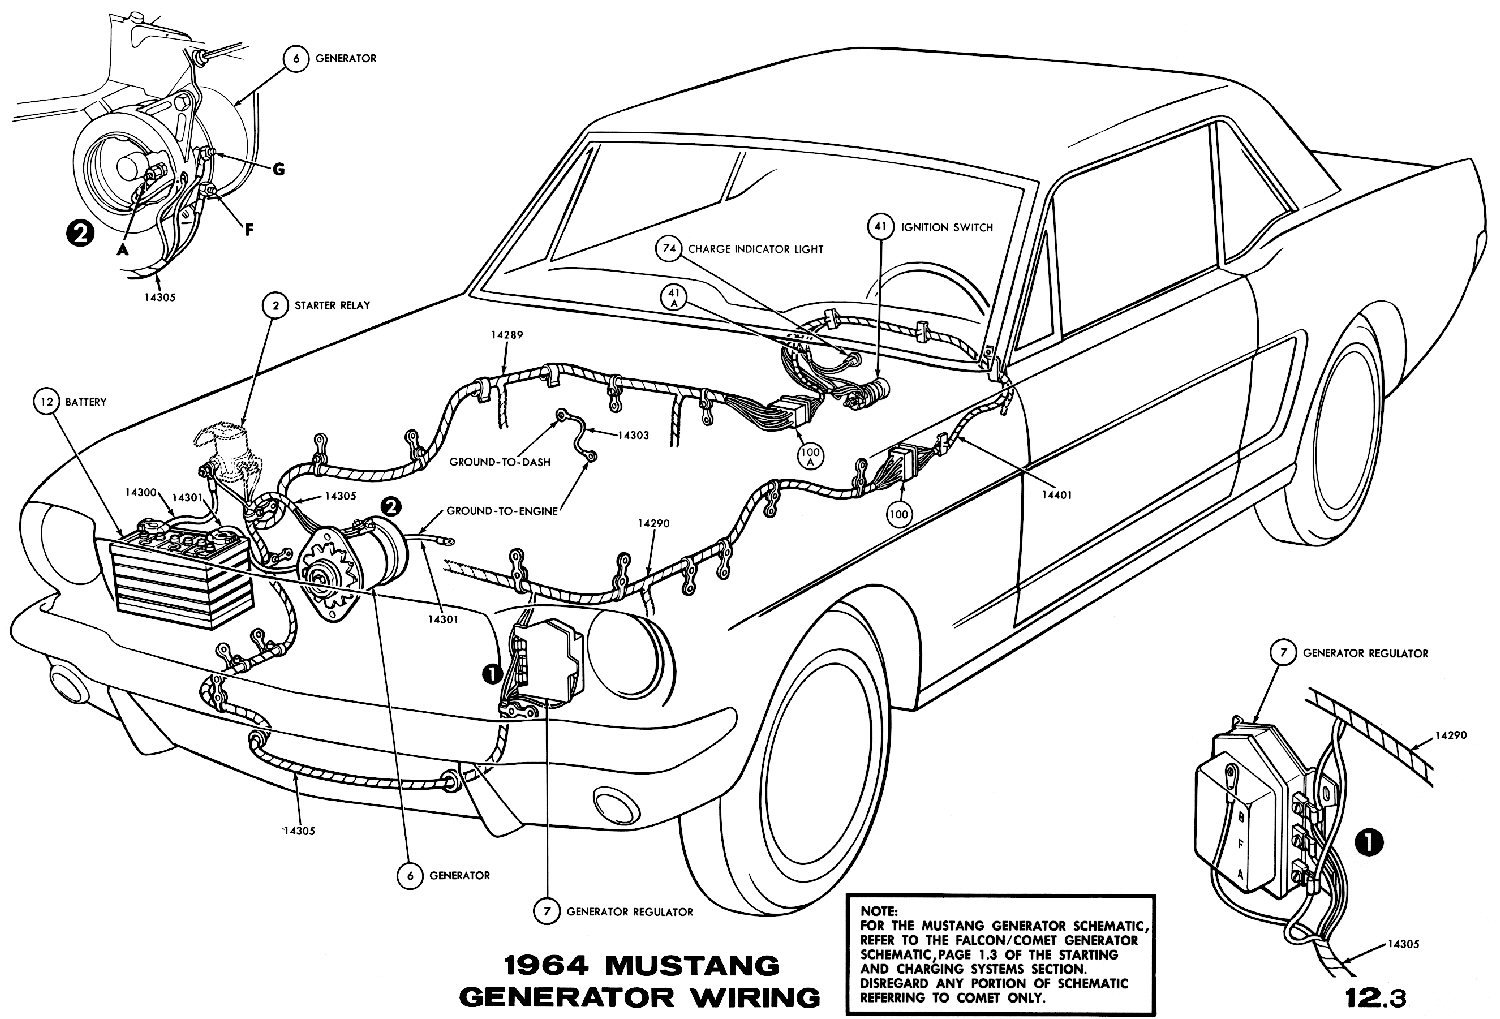 1964 Mustang Wiring Diagrams on 1968 cadillac wiring schematic